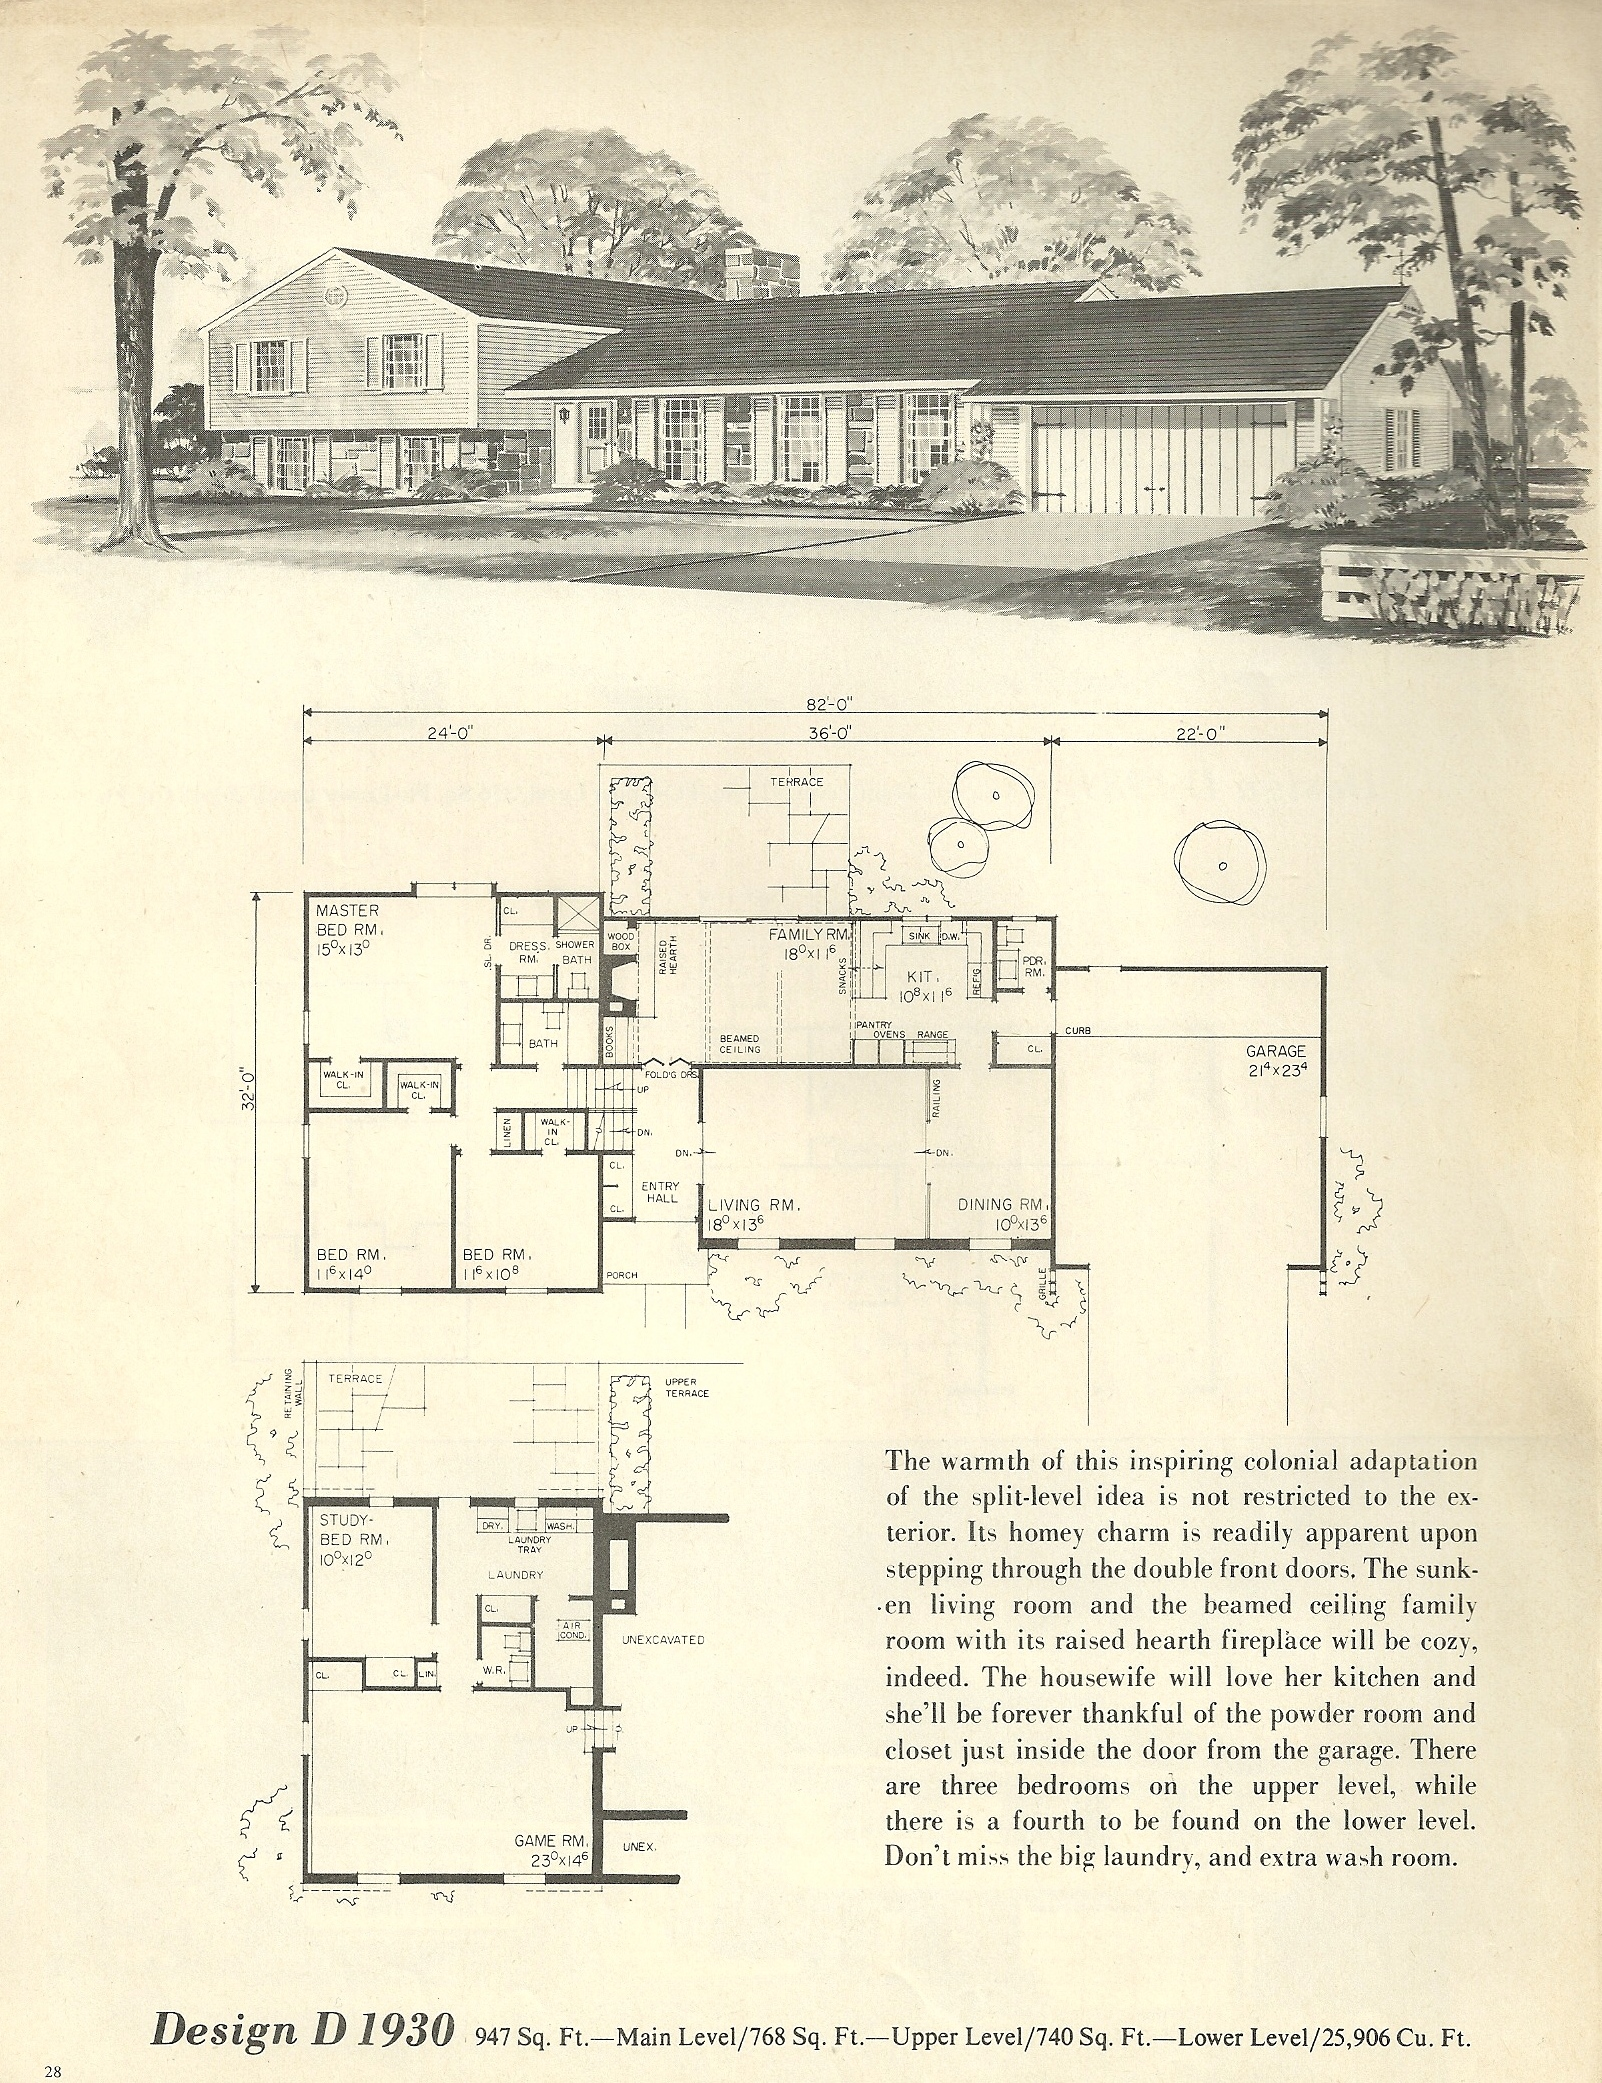 Vintage house plans 1930 antique alter ego for 1930s house plans